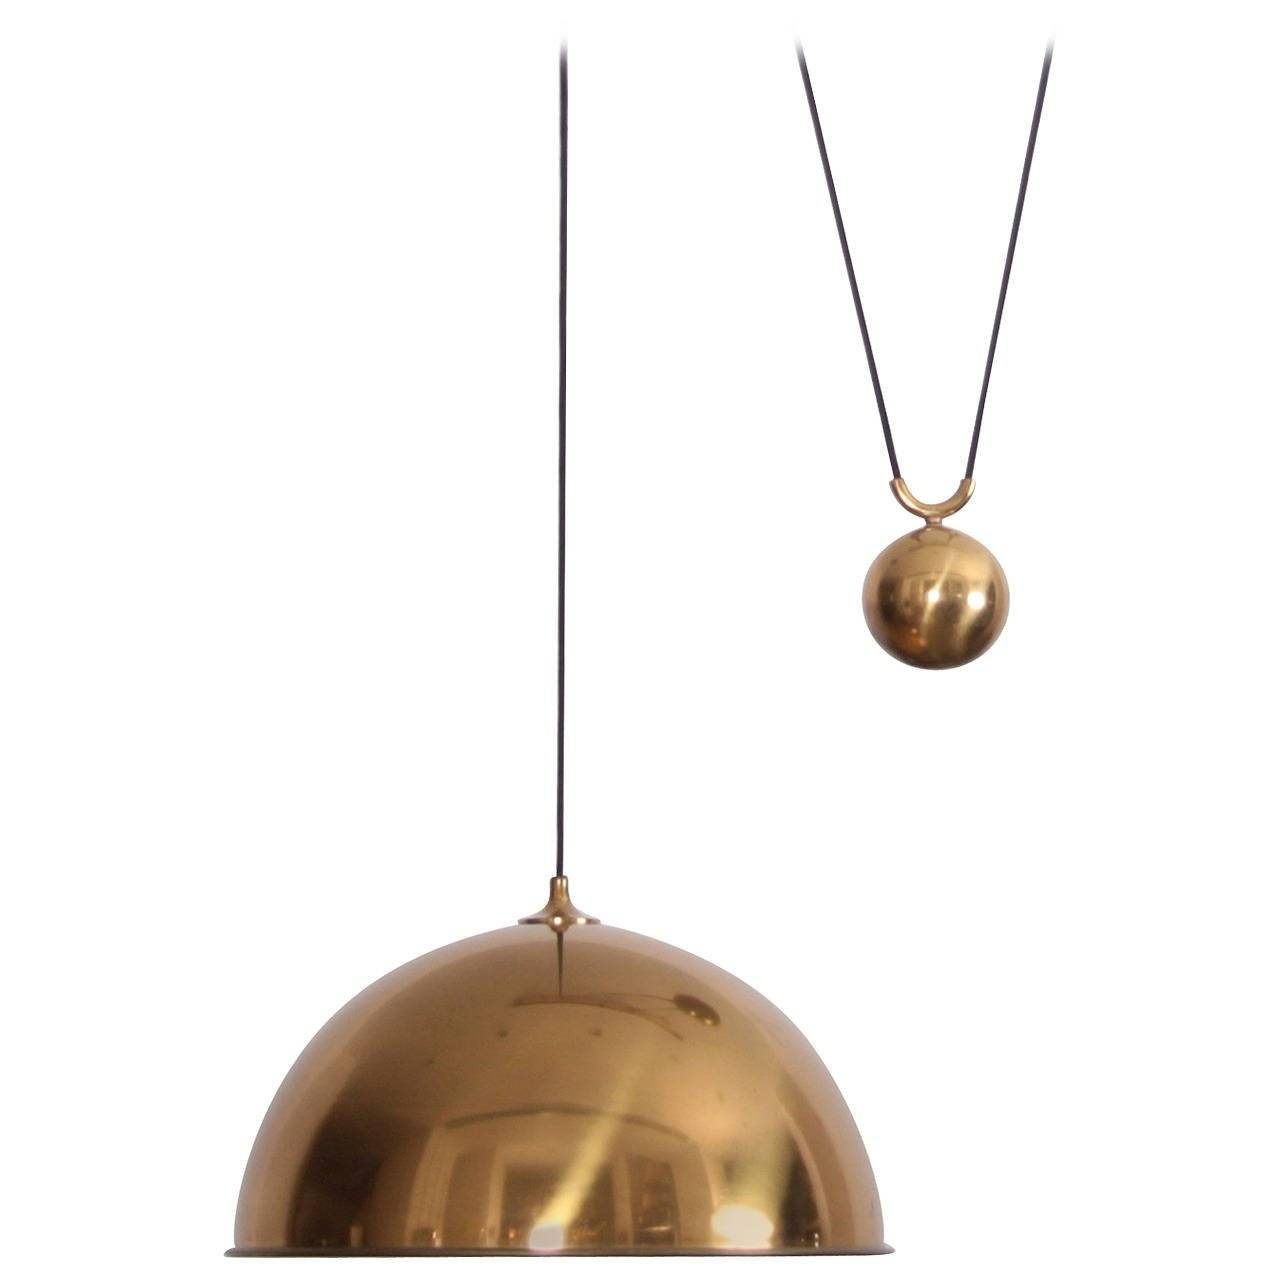 """Rare Extra-Large Florian Schulz """"posa"""" Side Counterweight Pendant with regard to Counterweight Pendant Lights (Image 15 of 15)"""